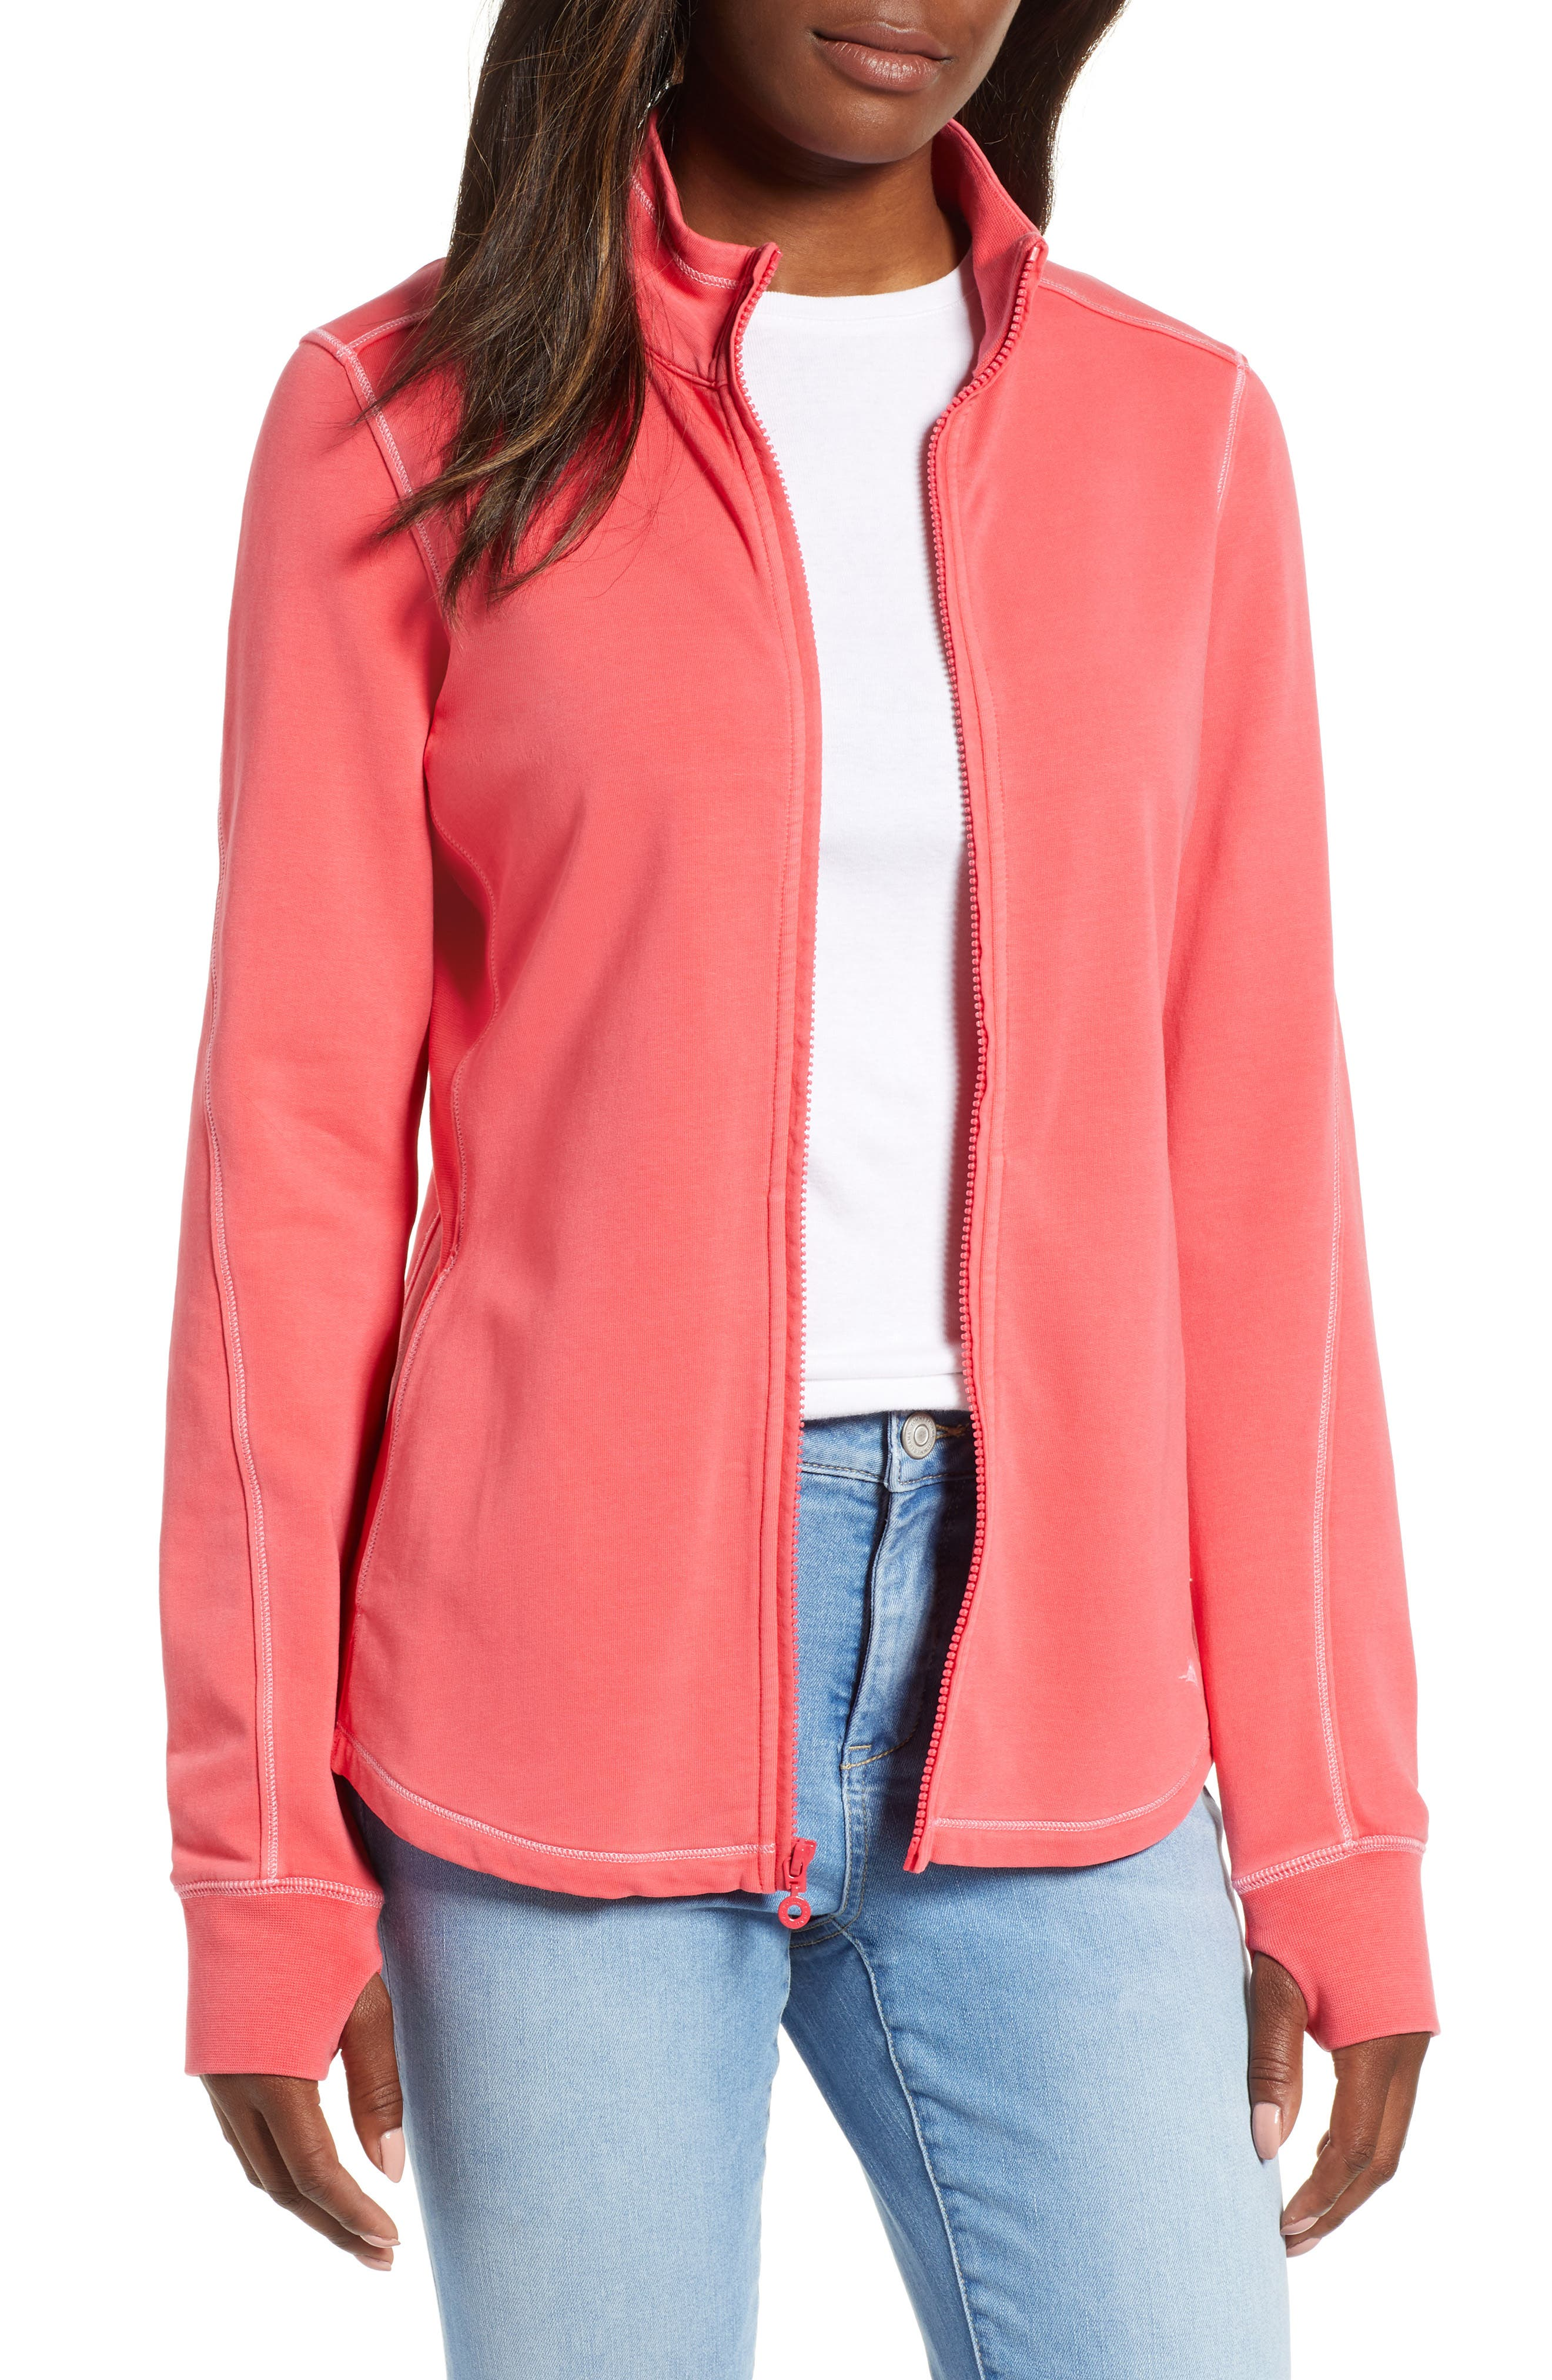 Tommy Bahama Jen And Terry Full Zip Top, Pink